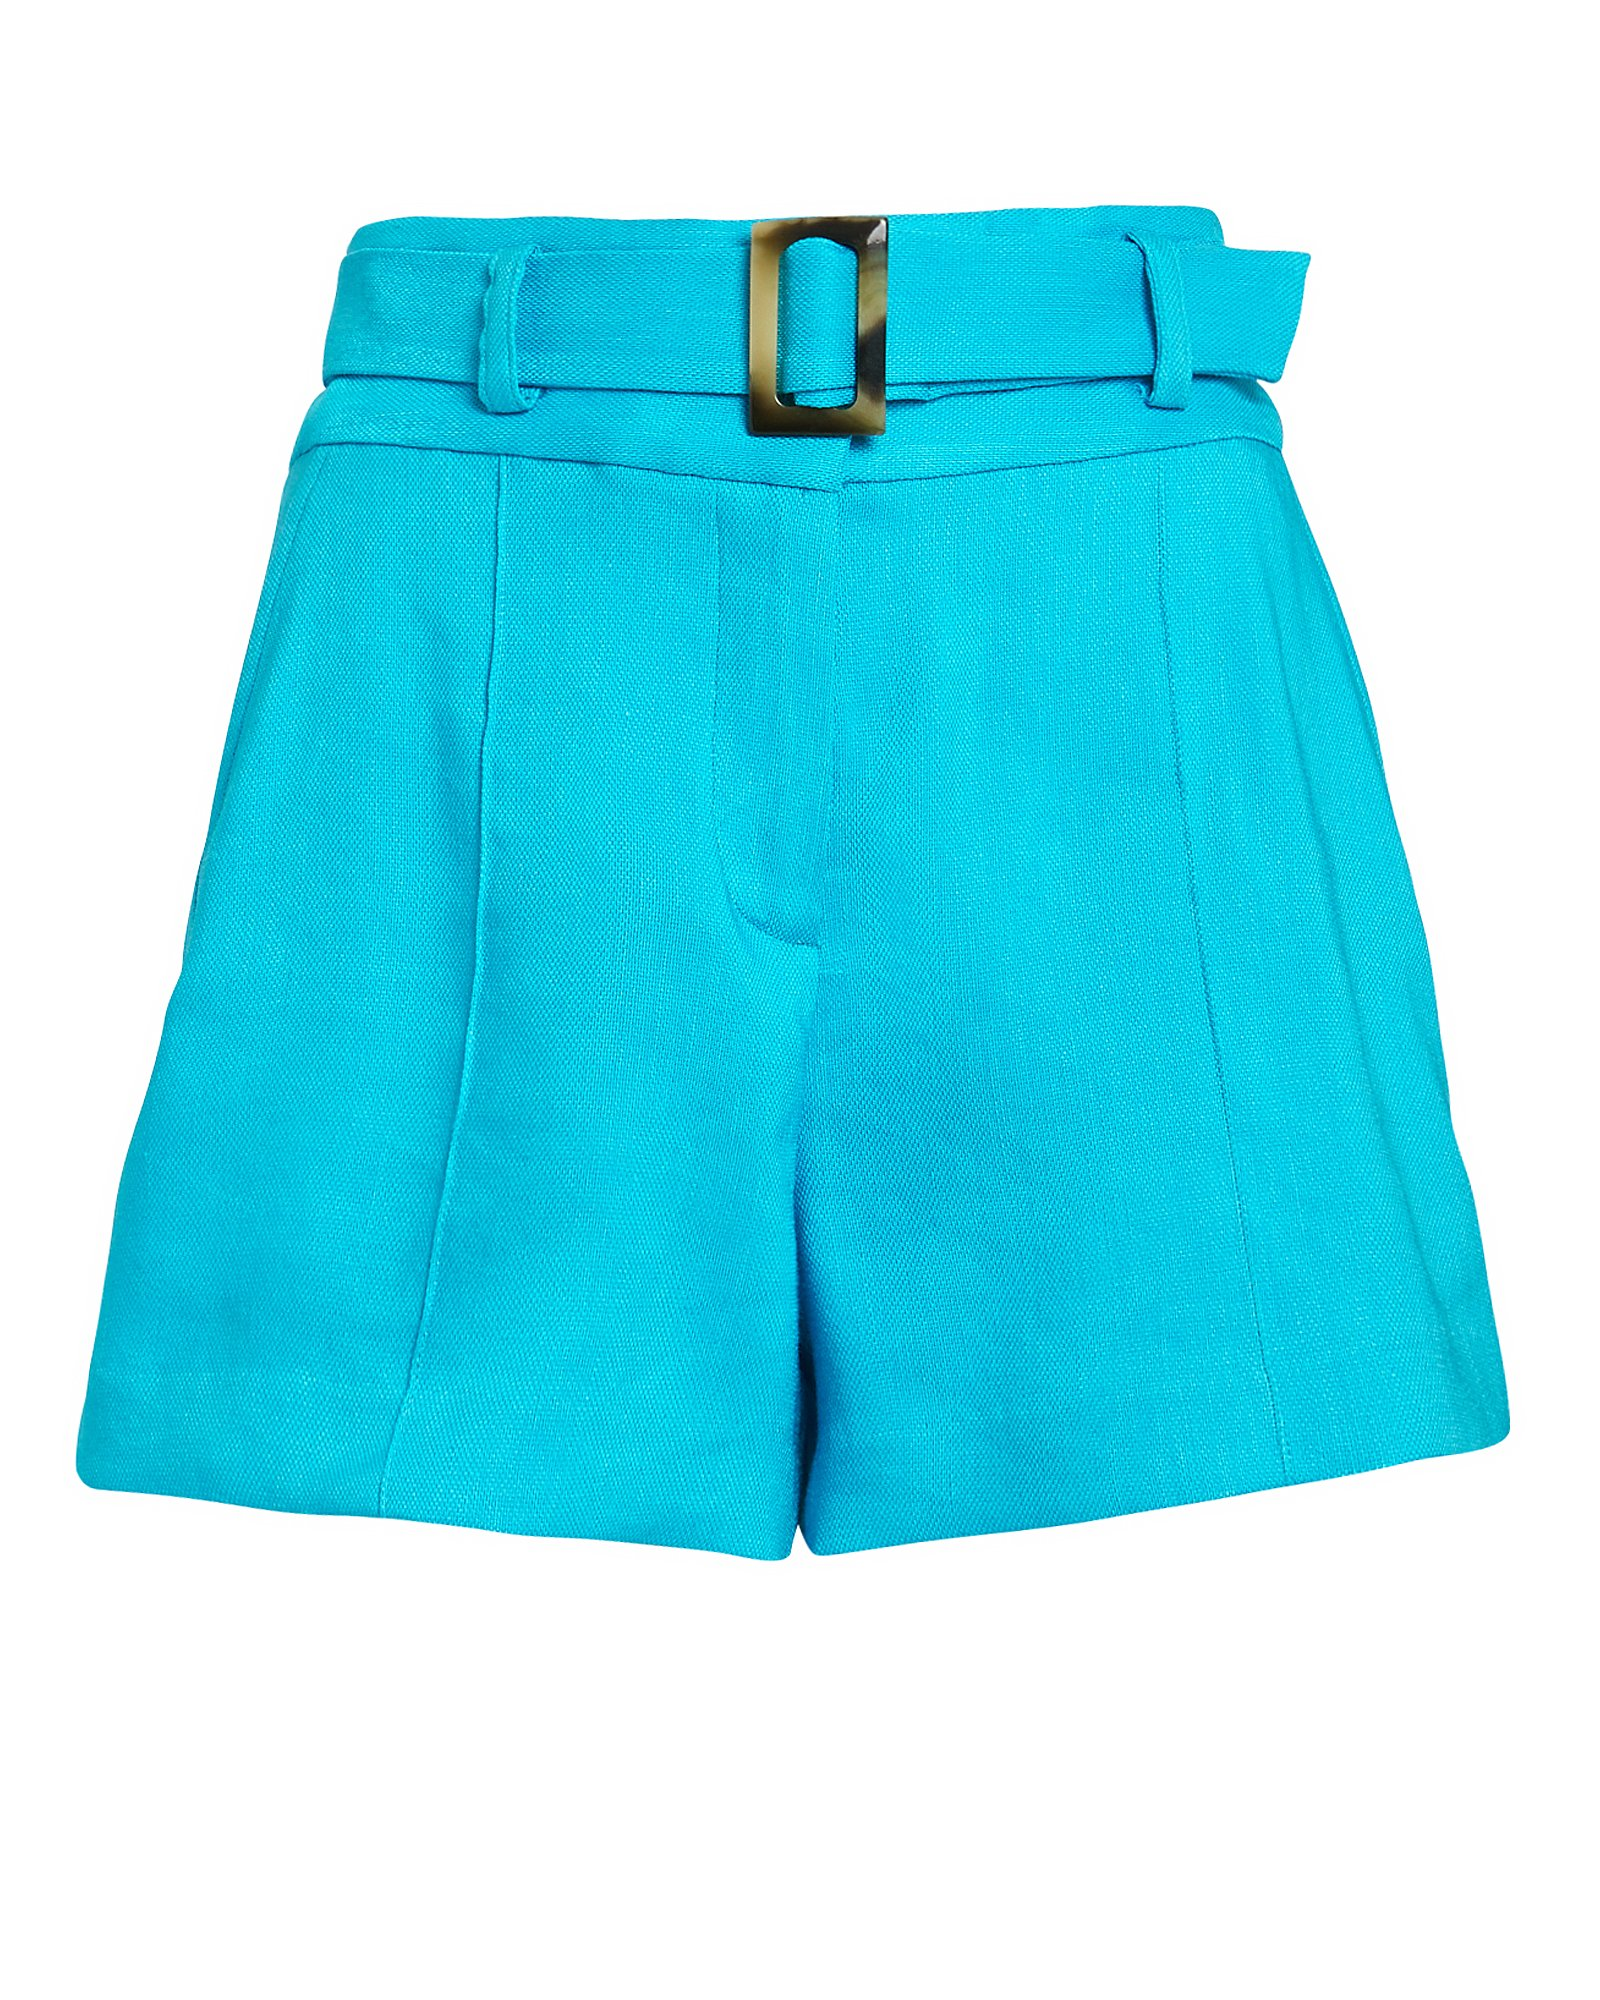 Veronica Beard Shorts VERONICA BEARD MAKAYLA BELTED SHORTS  TURQUOISE 6